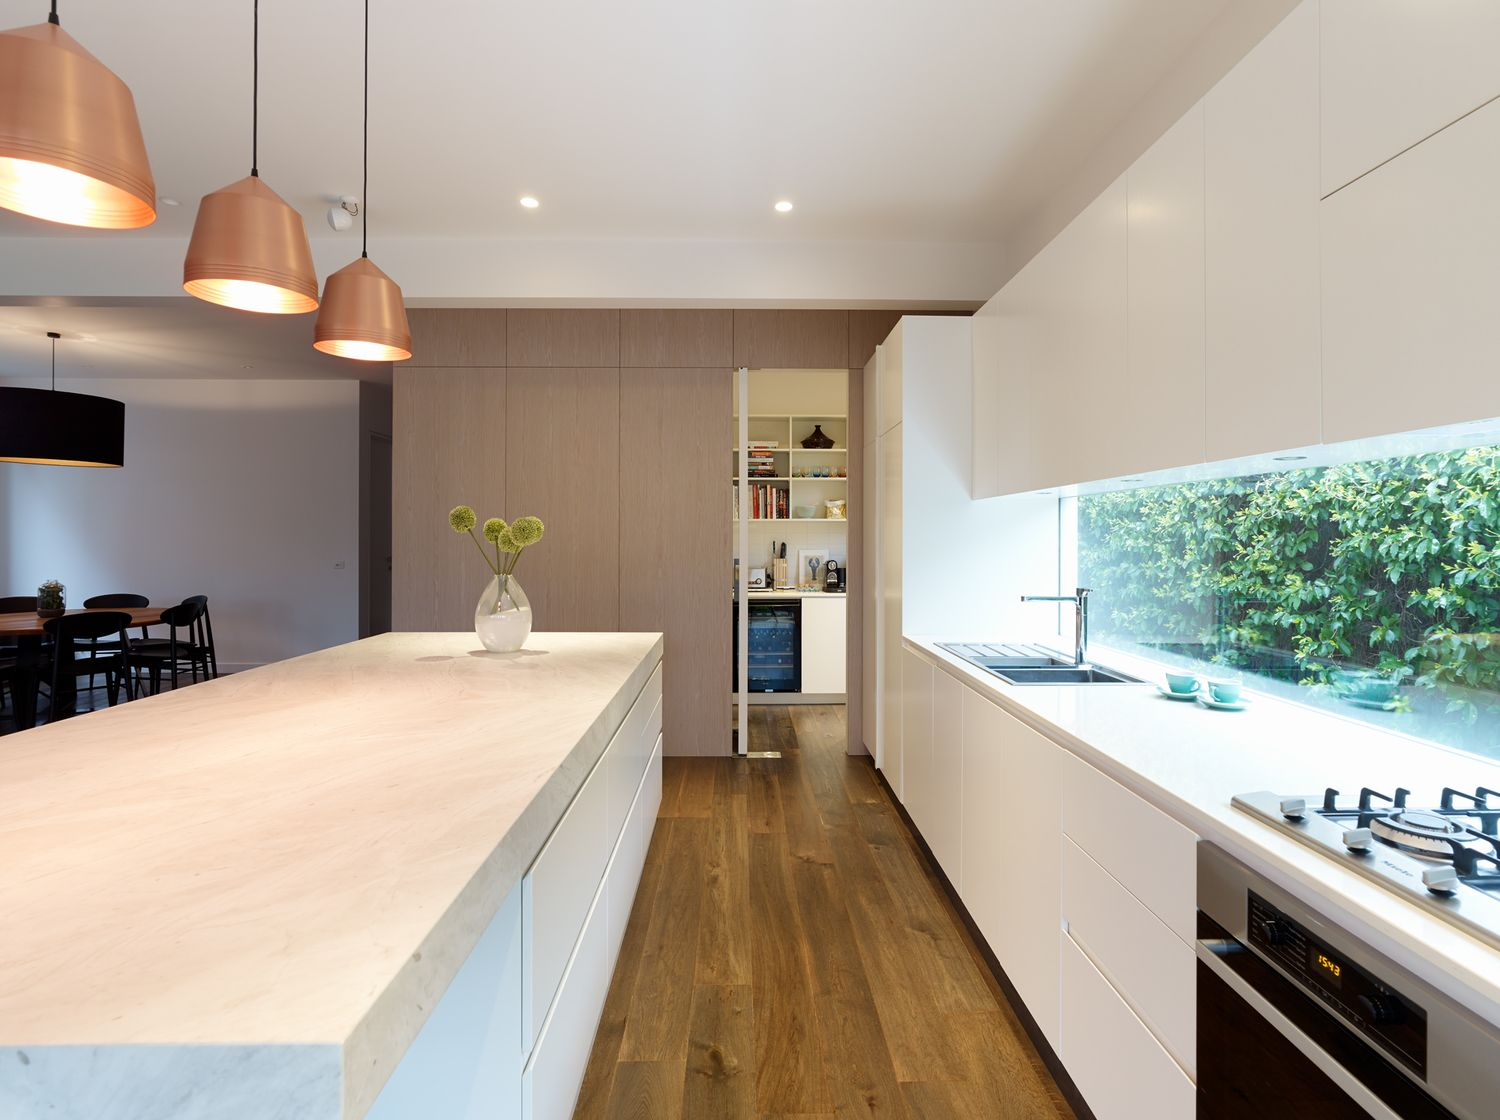 A luxurious interior refurbishment of a Victorian cottage to reveal a functional series of spaces and garden connections.